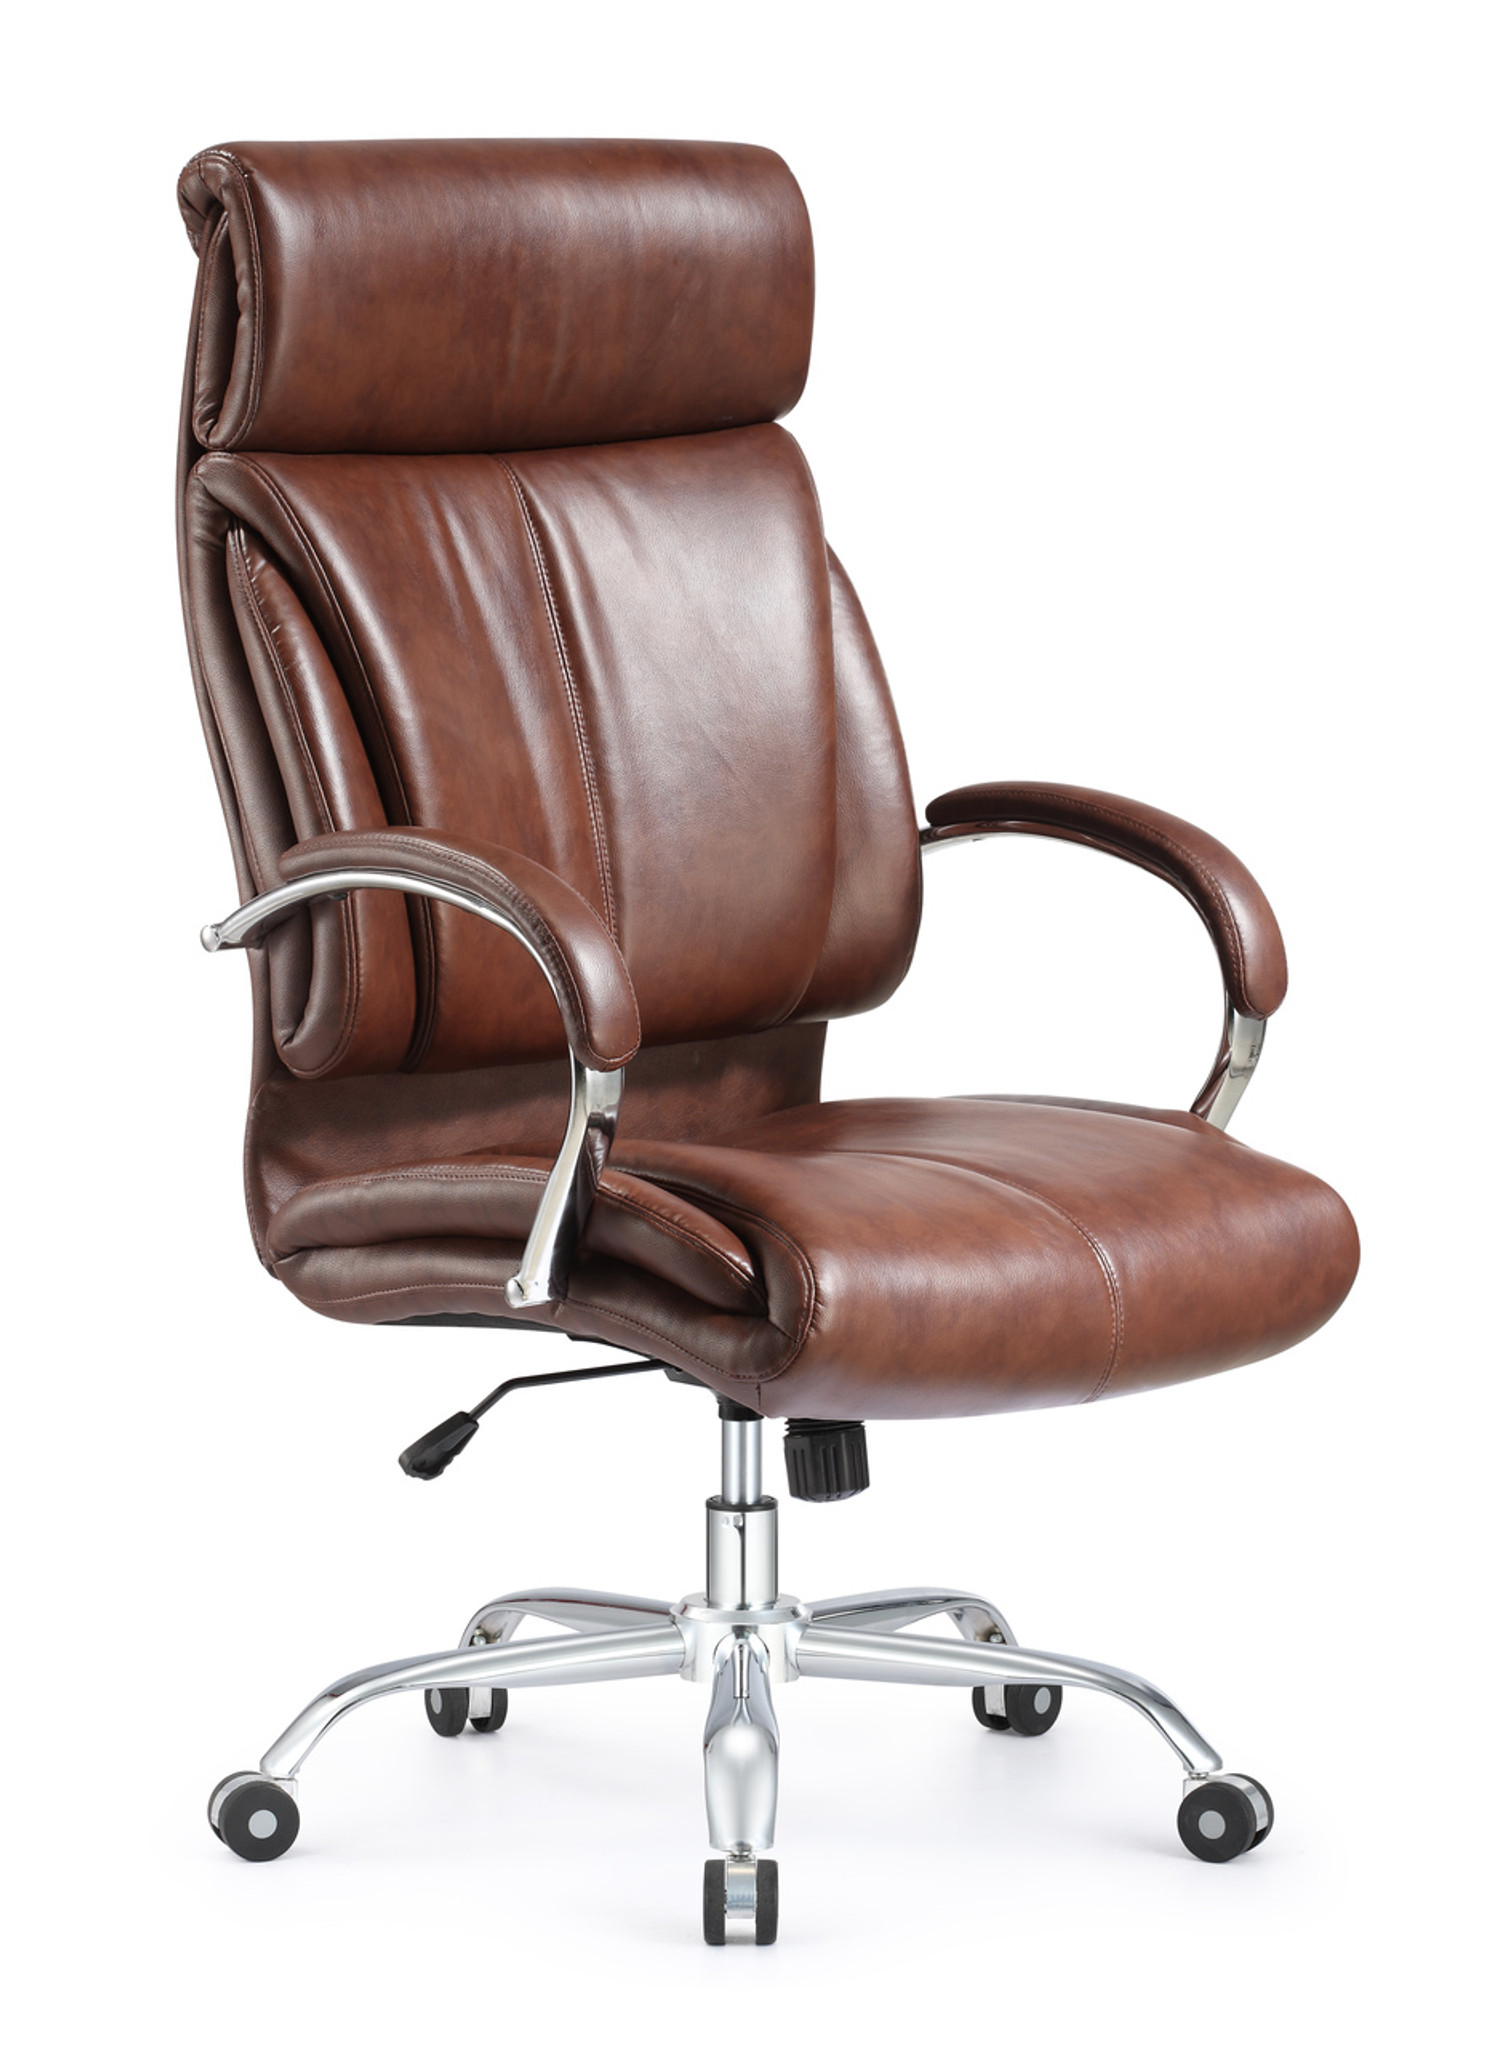 brown leather office chair. Ergonomic Style And Vintage High Back Leather Office Chair Brown